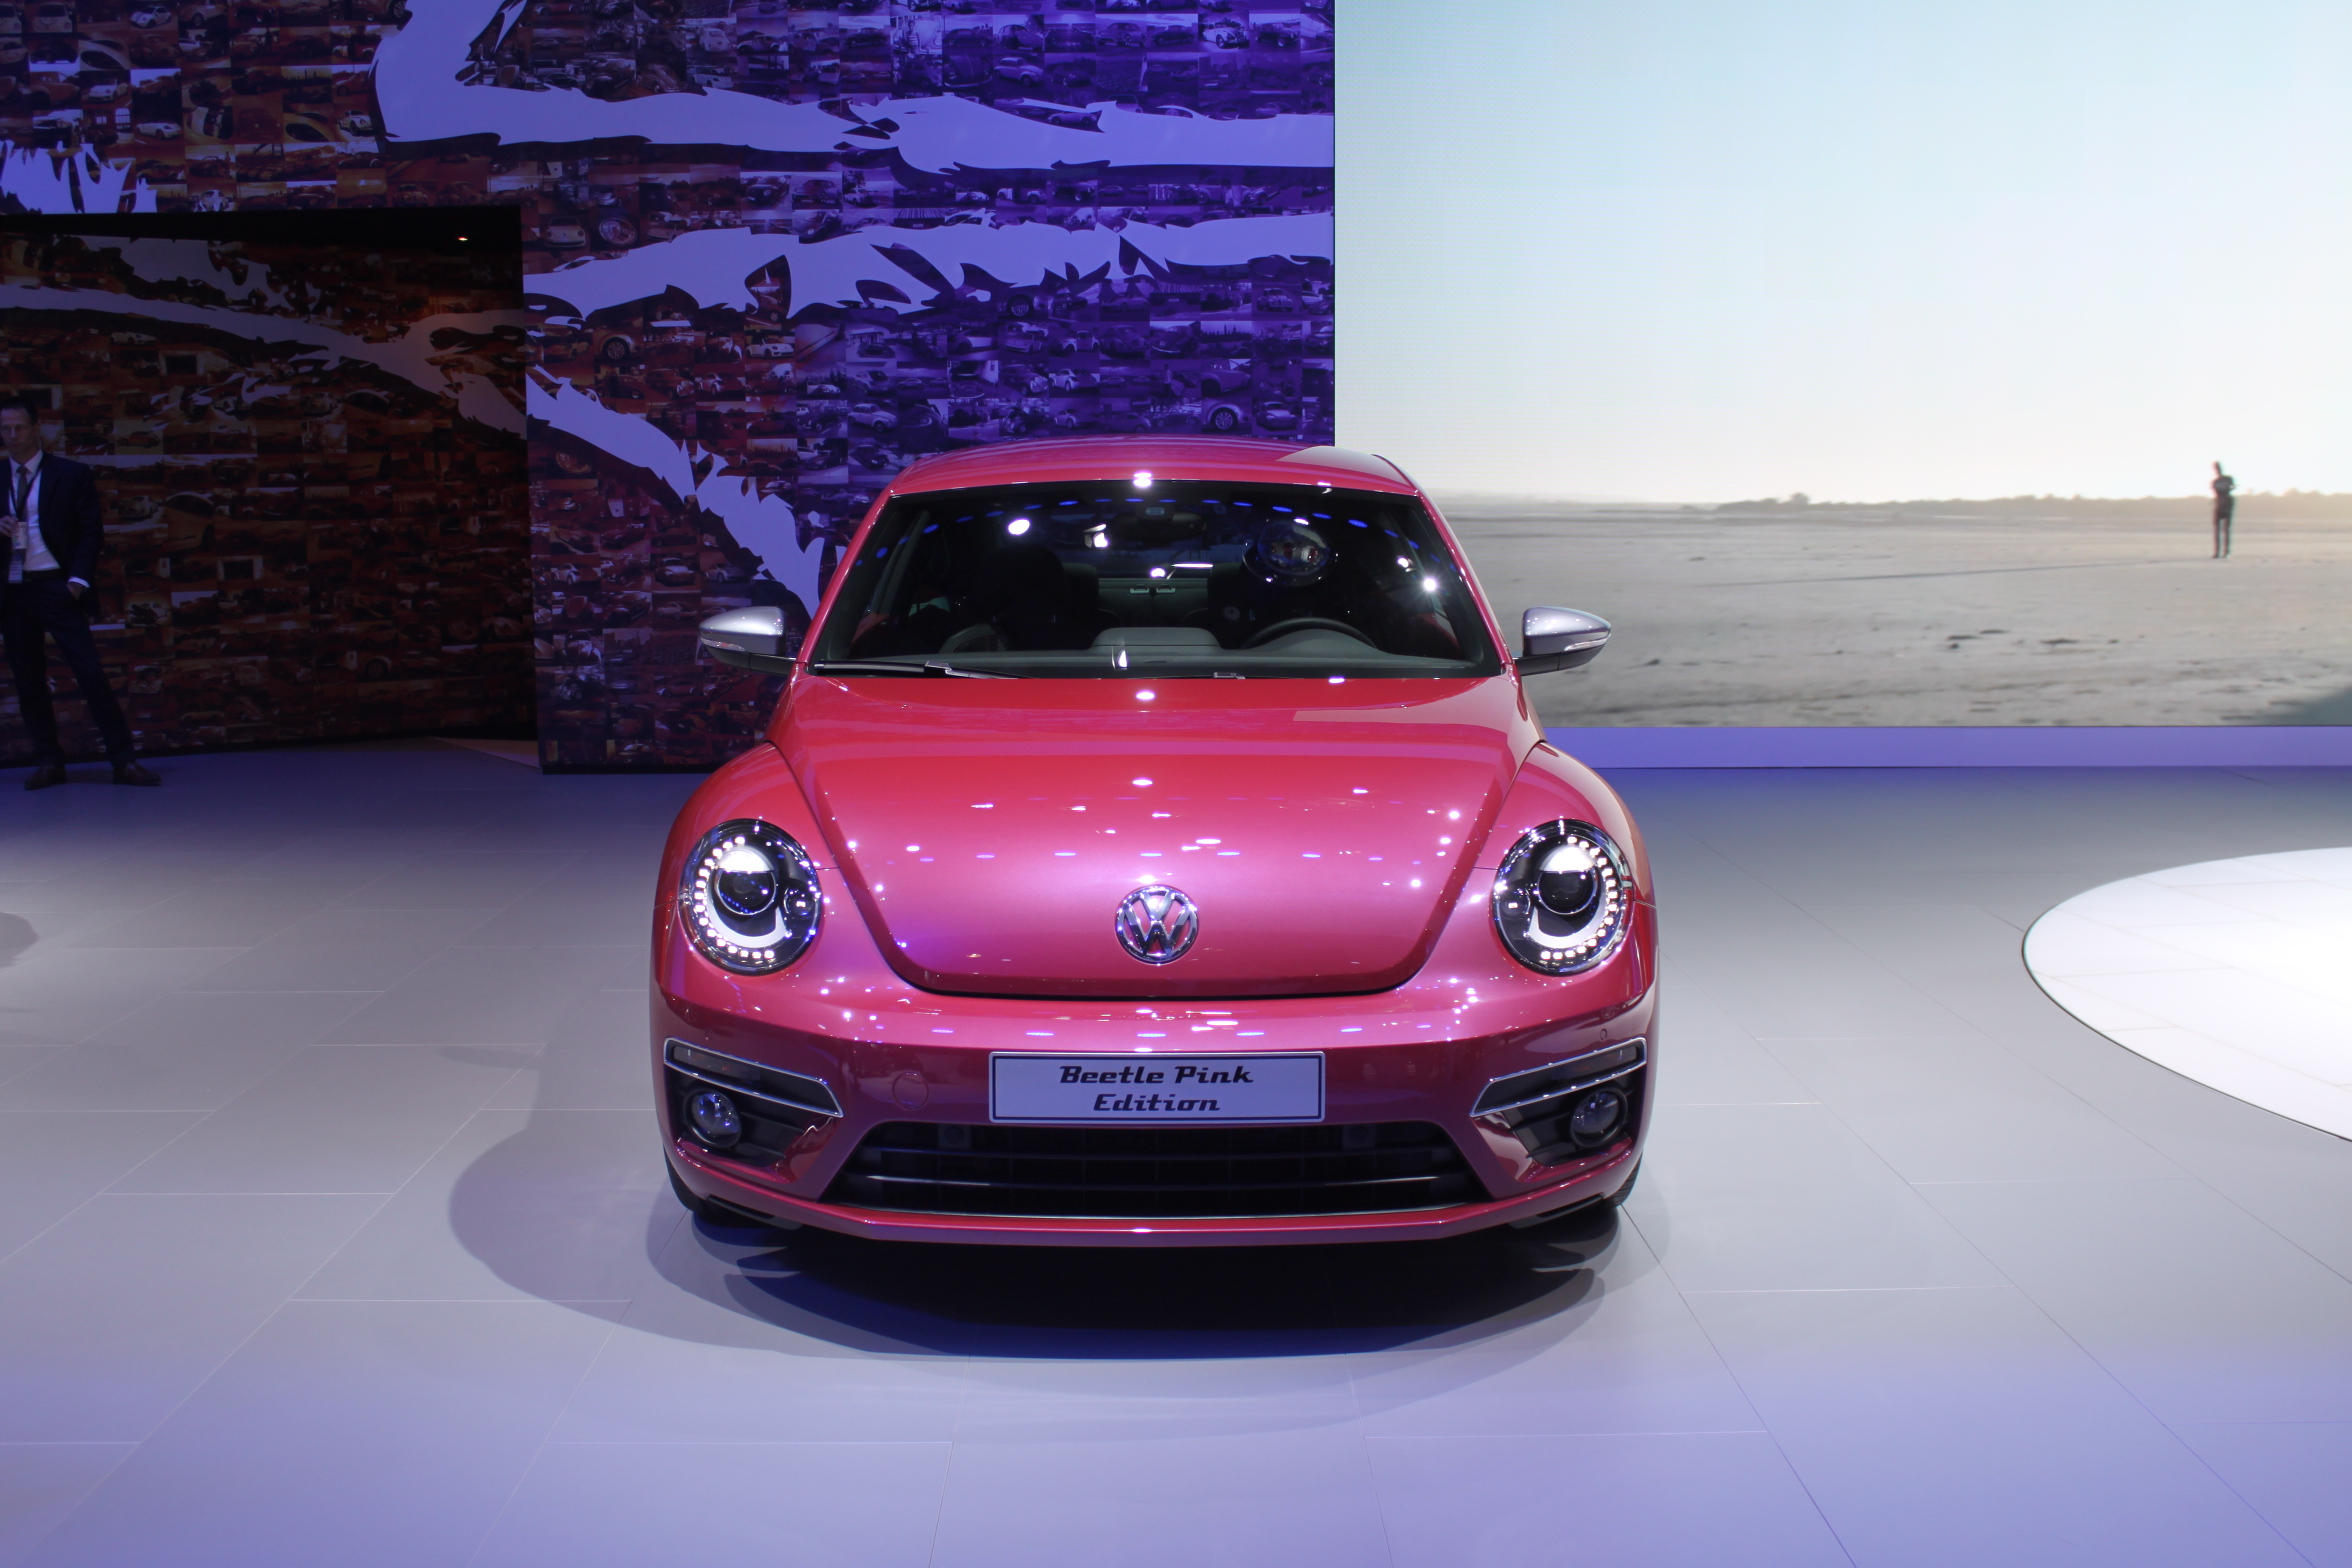 2016 Vw Beetle Pink Edition 2